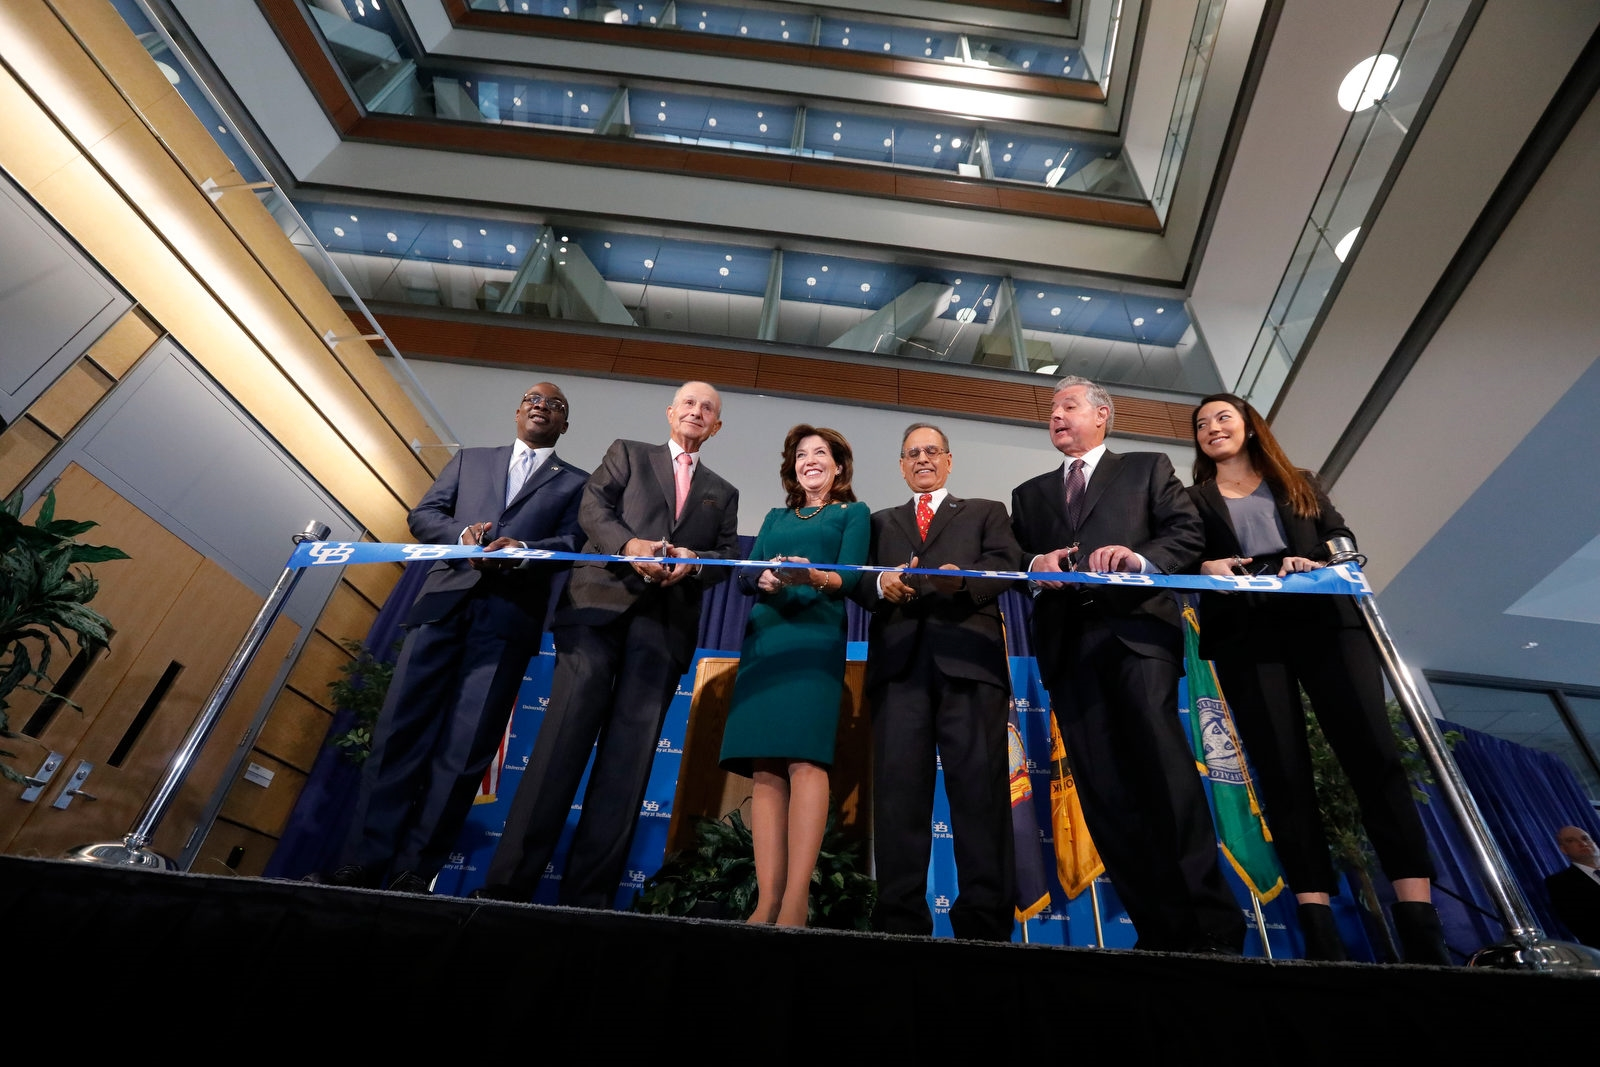 Dignitaries cut the ribbon for the new UB Jacobs School of Medicine and Biomedical Sciences, Tuesday, Dec. 12, 2017.  From left are Buffalo Mayor Byron Brown, Delaware North Chairman Jeremy Jacobs, Lt. Gov. Kathy Hochul, UB President Satish Tripathi, med school Dean Michael Caine and 2nd year student Laura Reed.